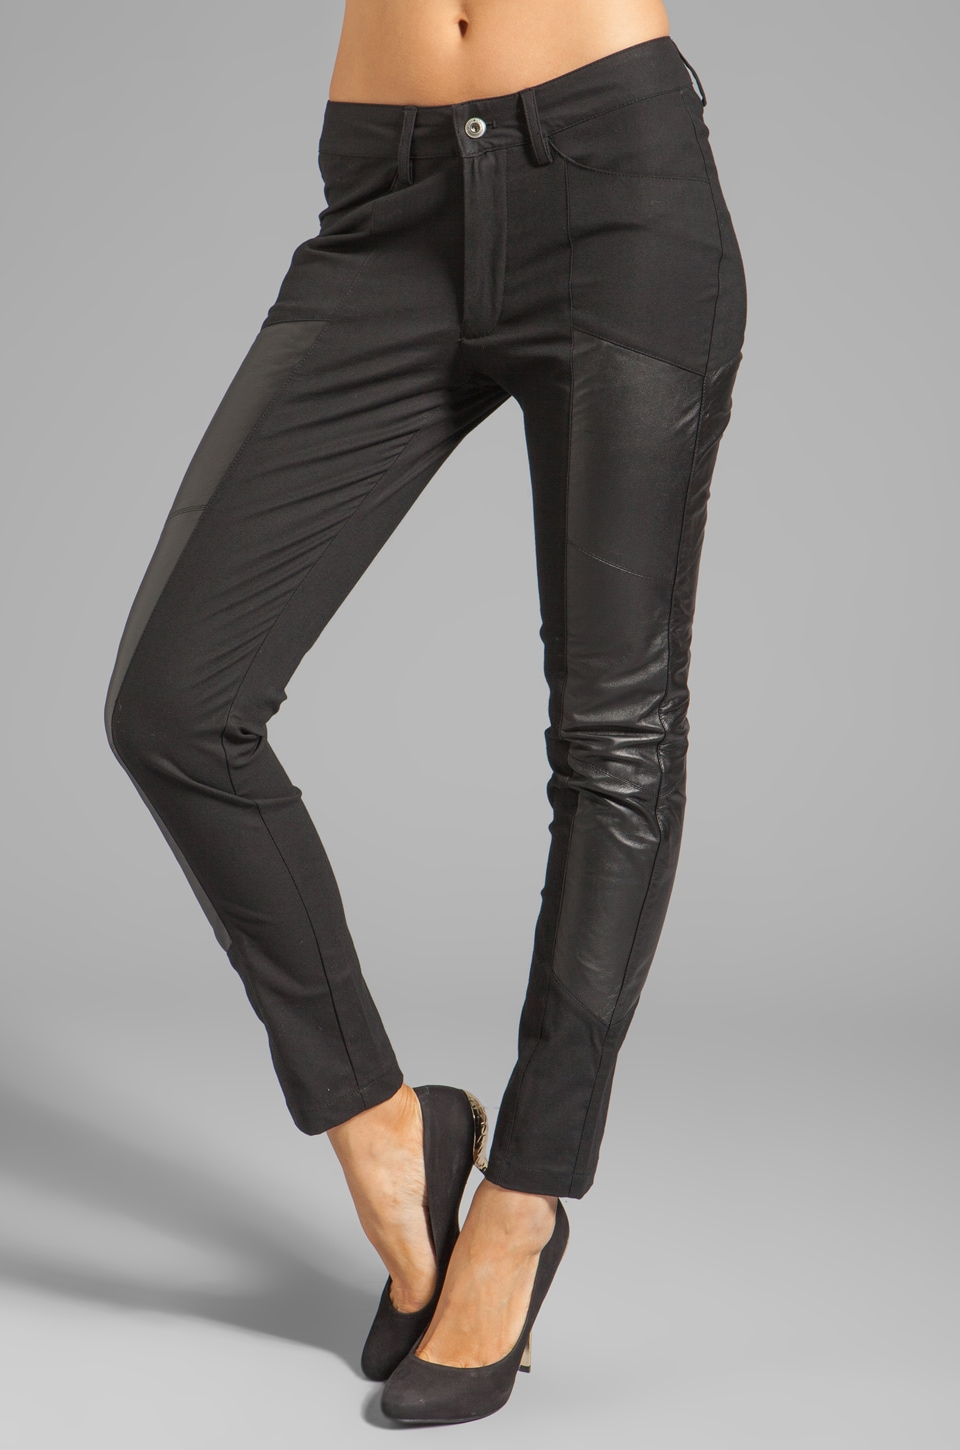 Wish Mesmerize Pant in Black